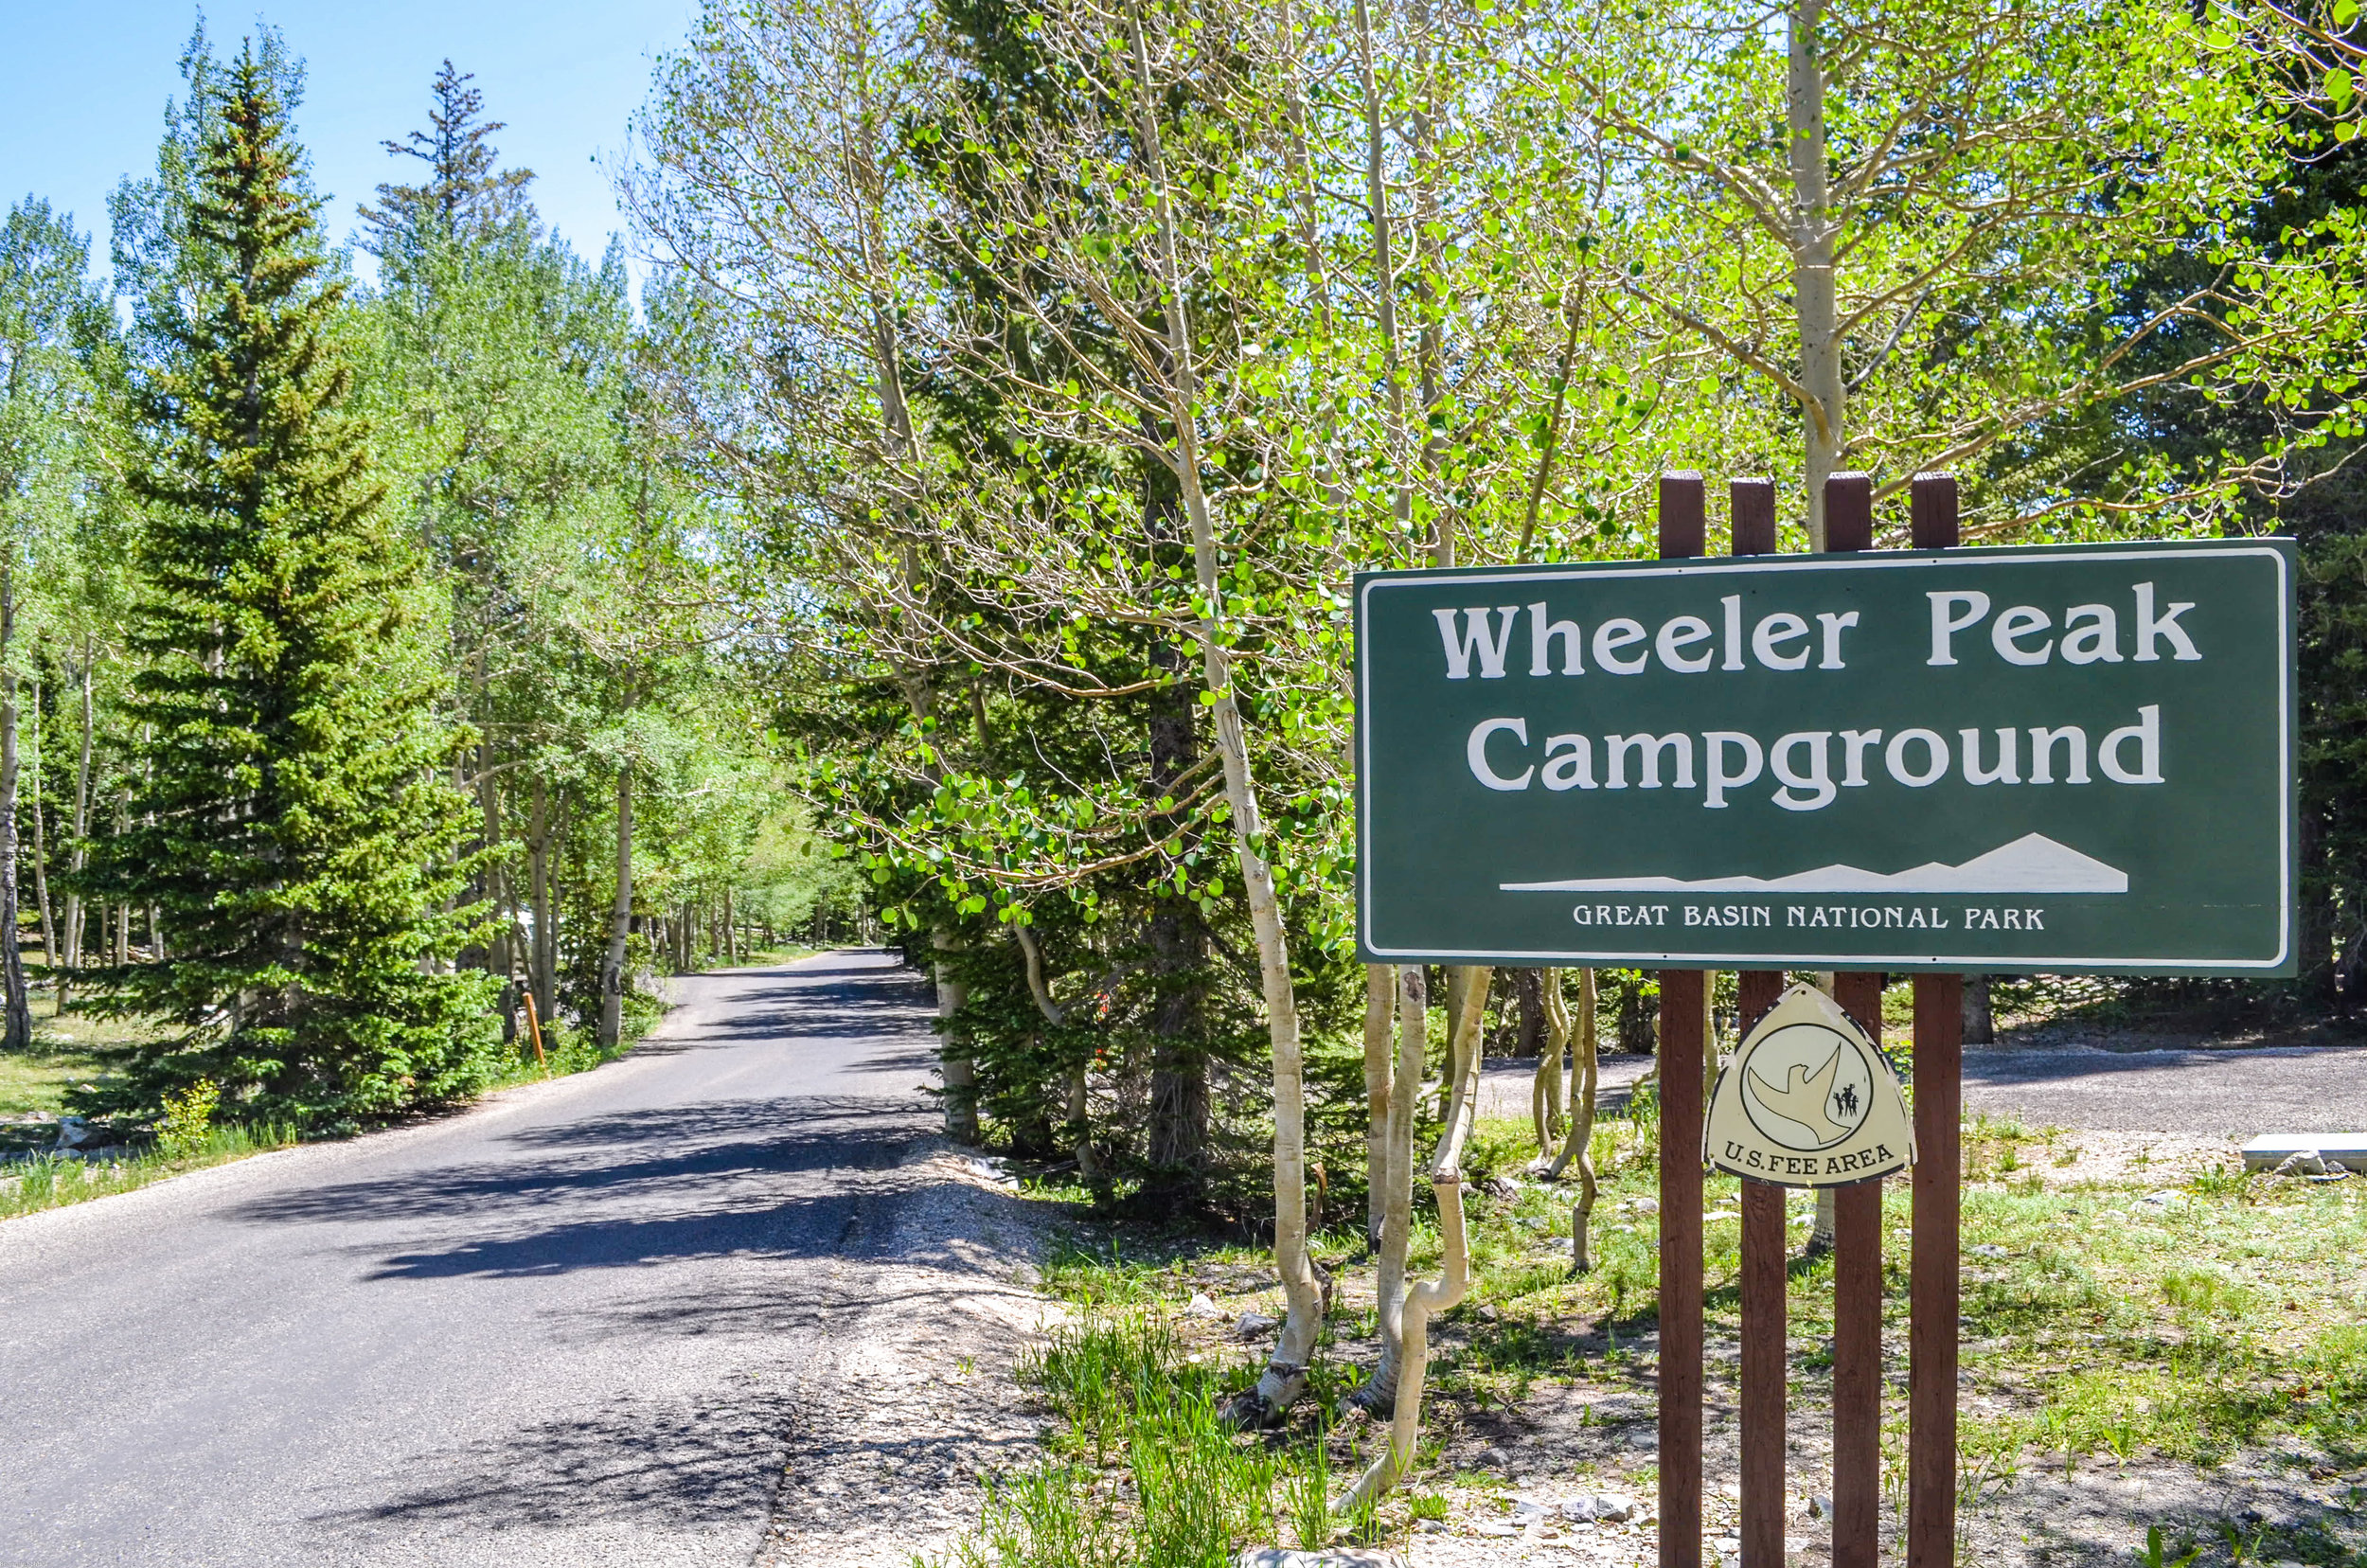 We set up camp at Wheeler Peak Campground on day #4. Totally worthwhile